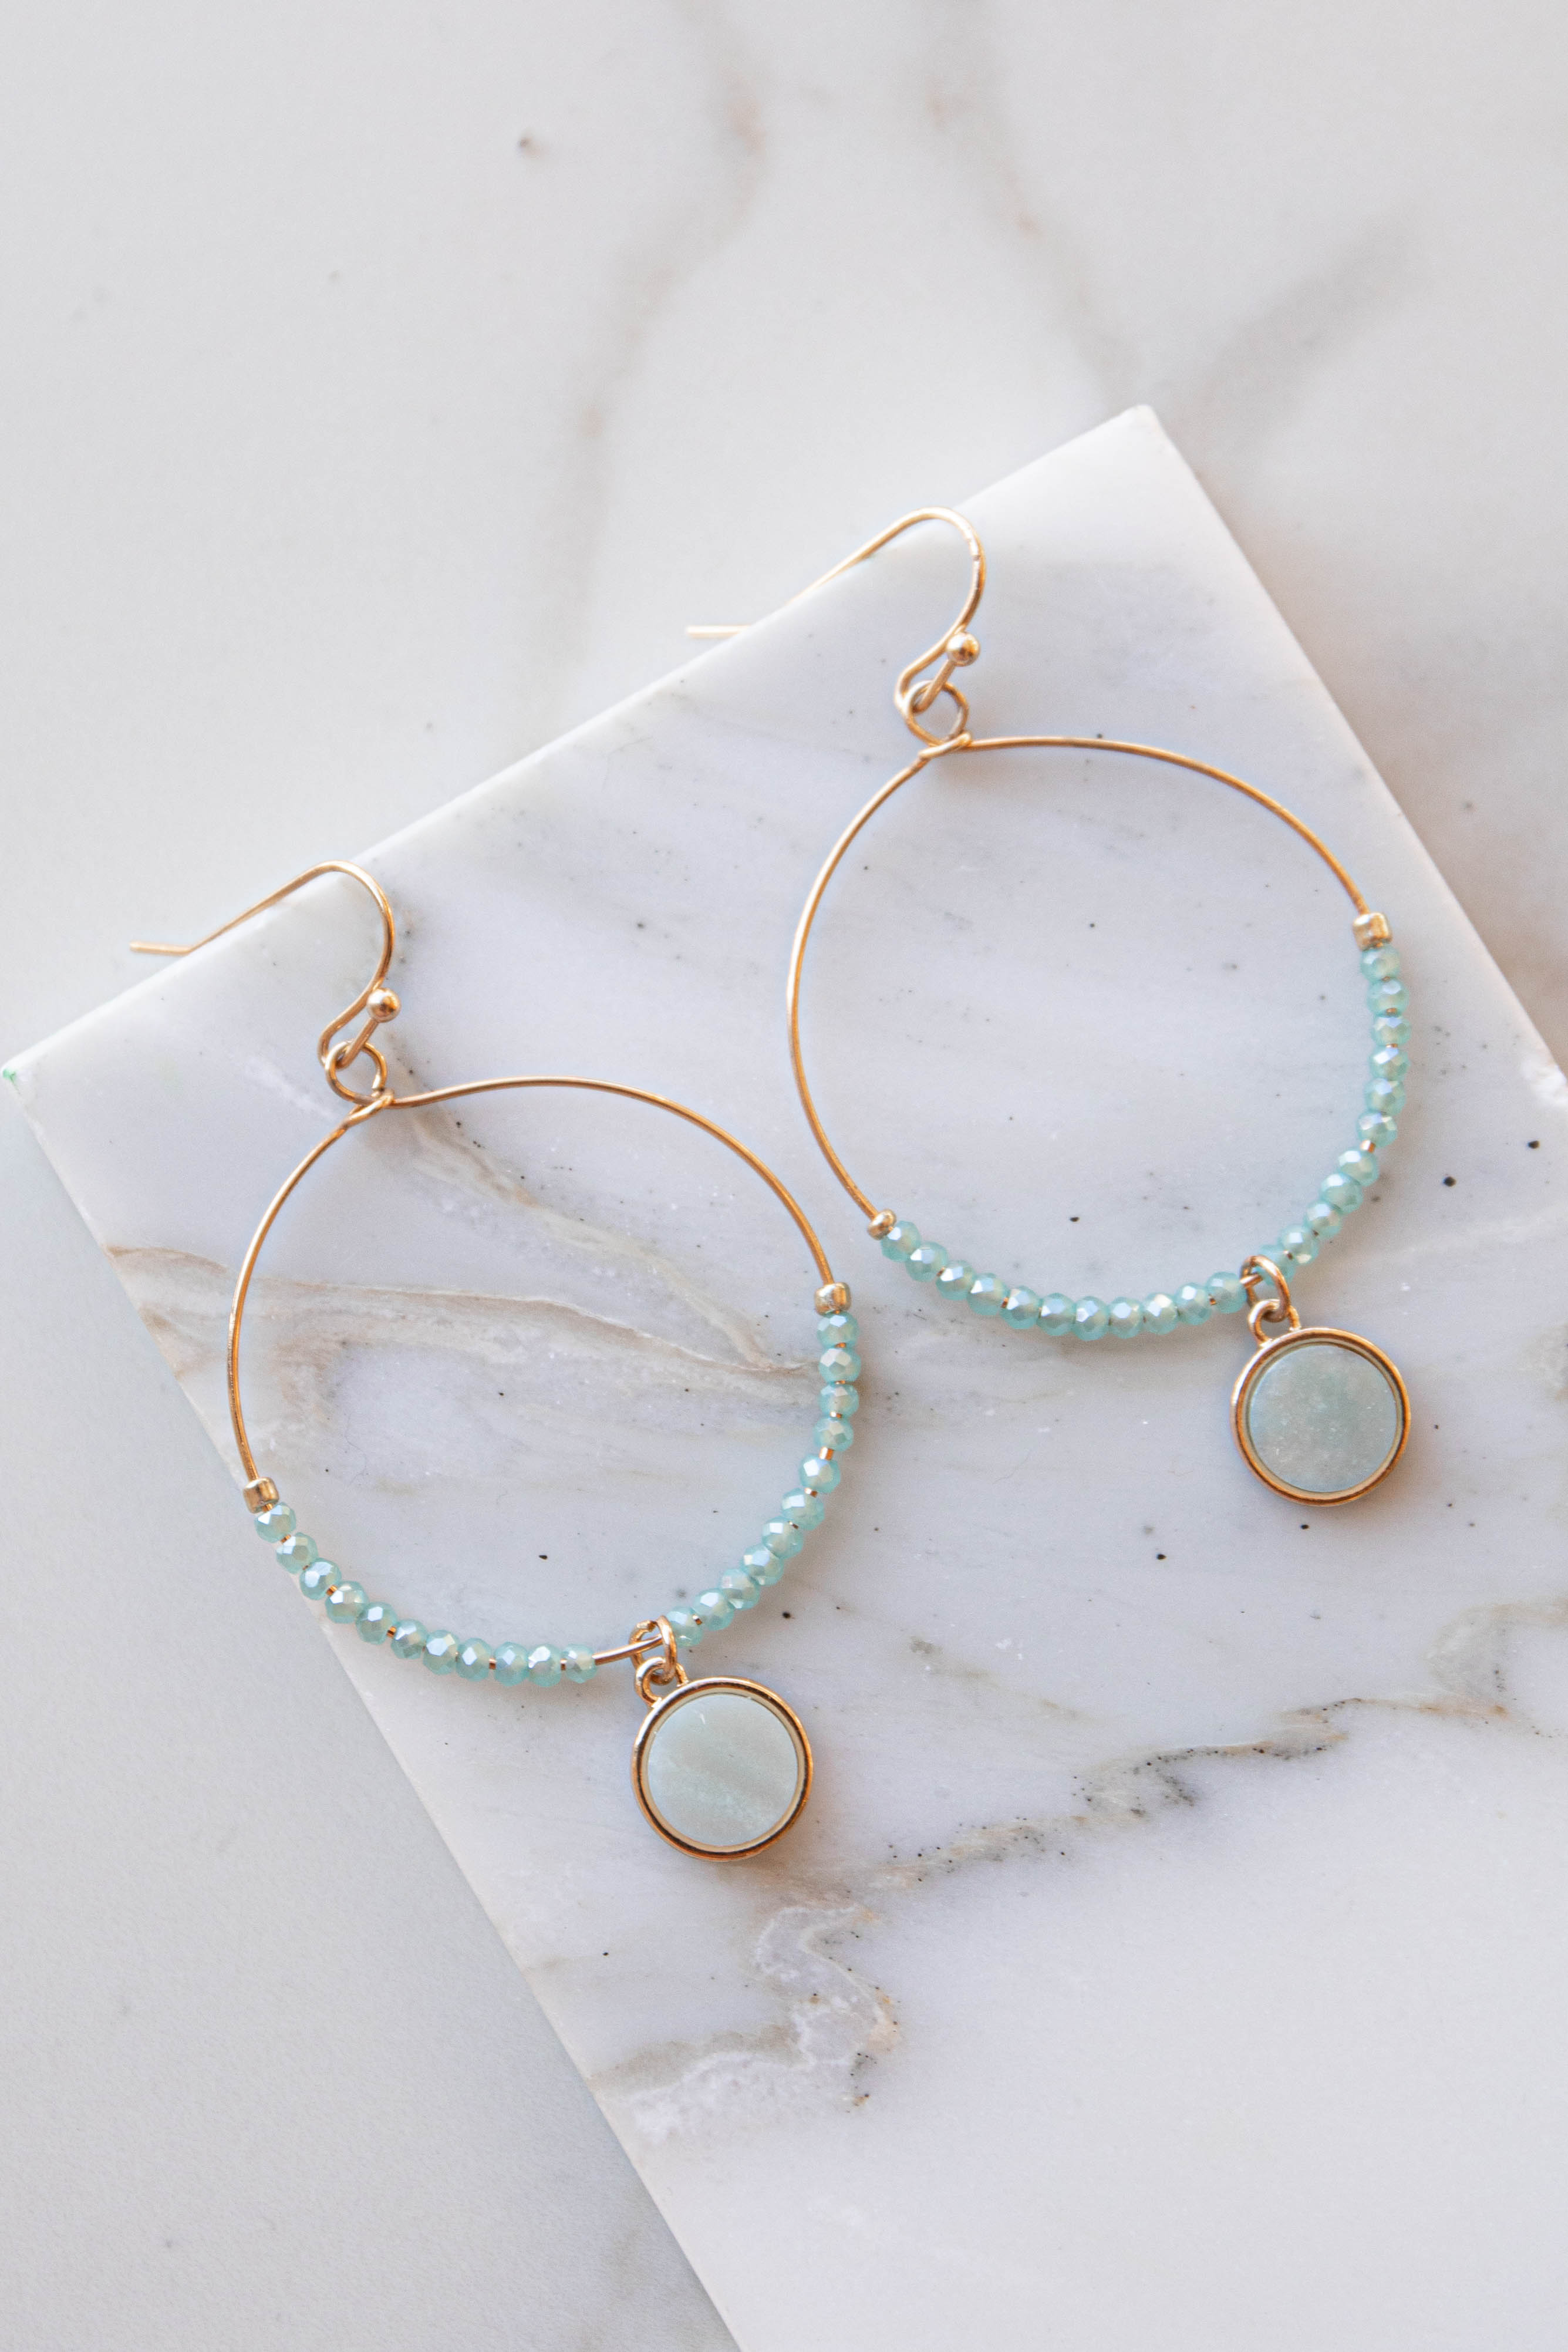 Mint and Gold Hoop Earrings with Natural Gemstone Charm